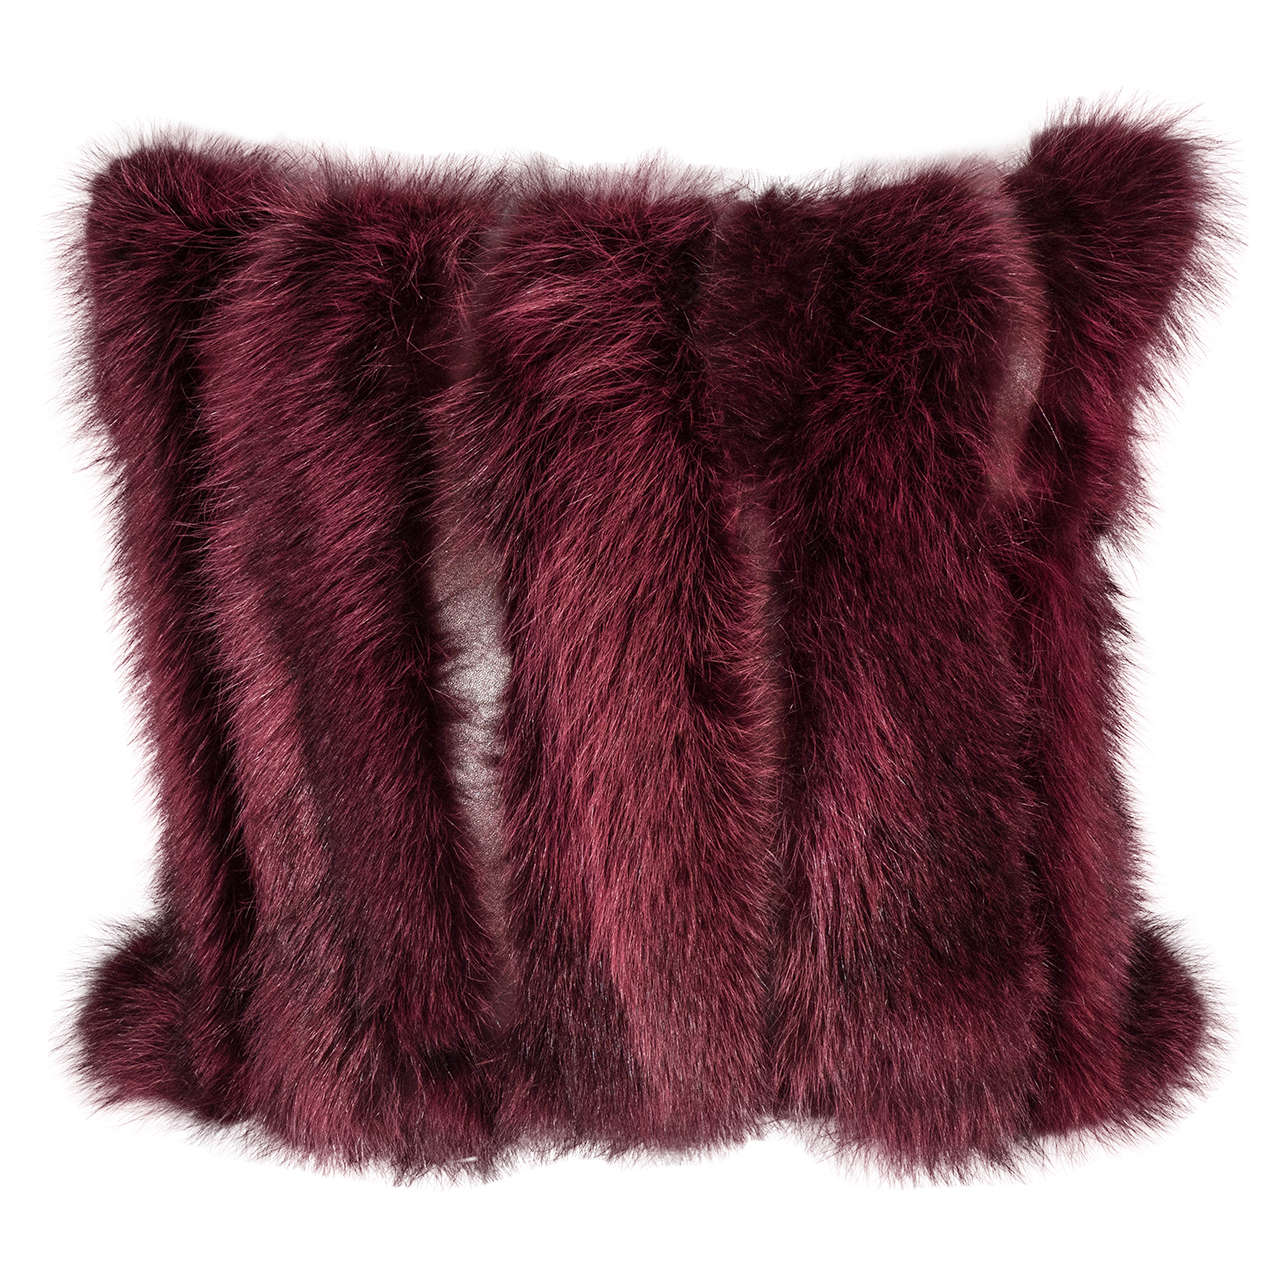 Genuine Fox Pillow in Burgundy with Leather Strips For Sale at 1stdibs